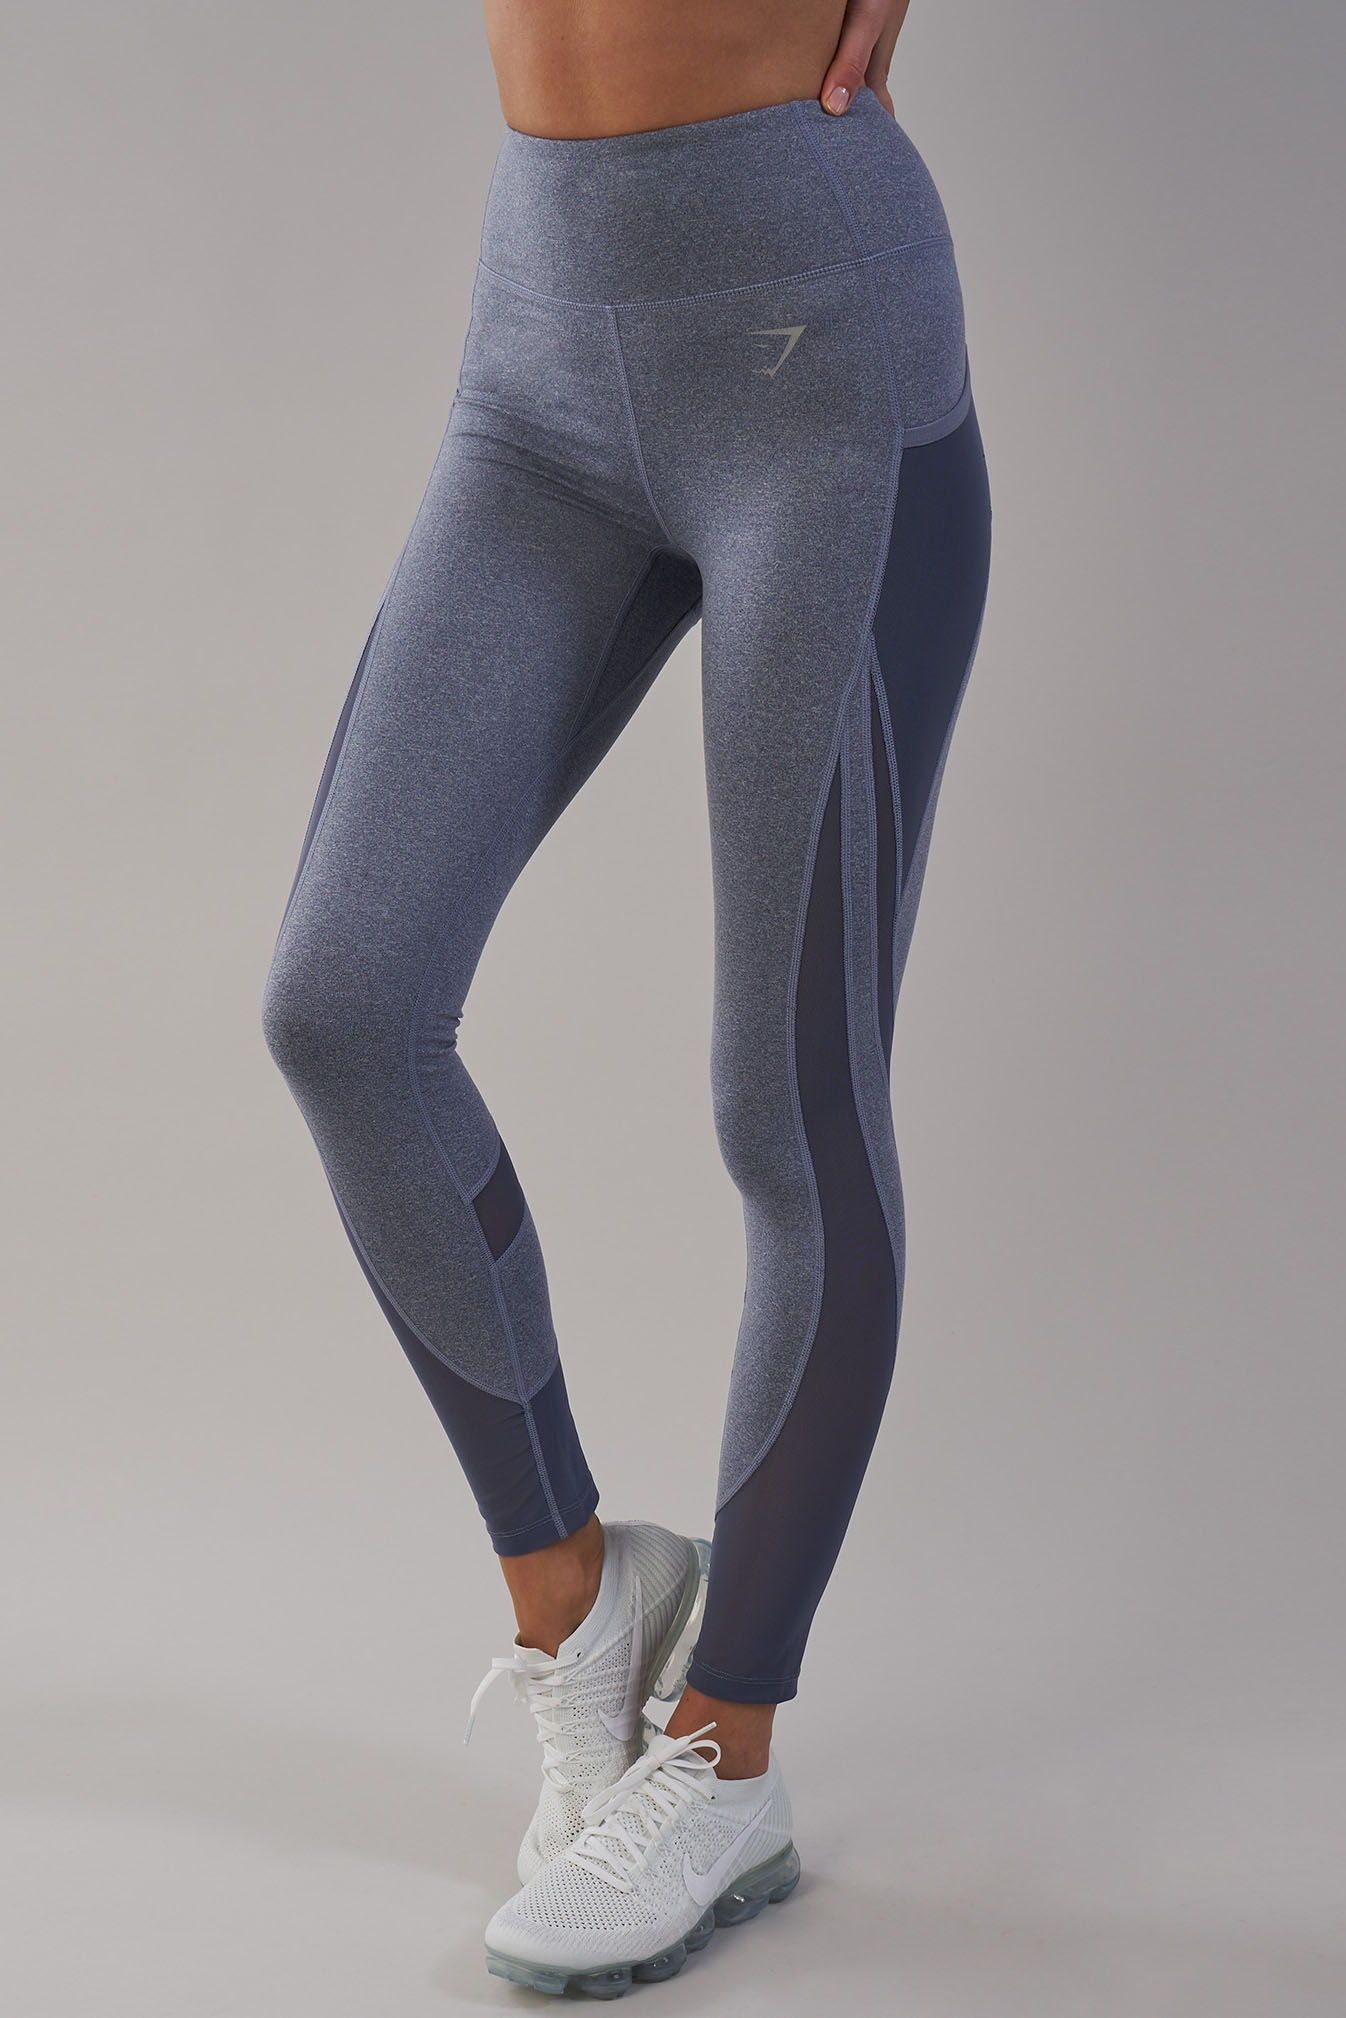 e78802e3105da Complete with subtle side pockets and reflective Gymshark logo, the Sleek  Sculpture Leggings 2.0 are now available in Steel Blue Marl.